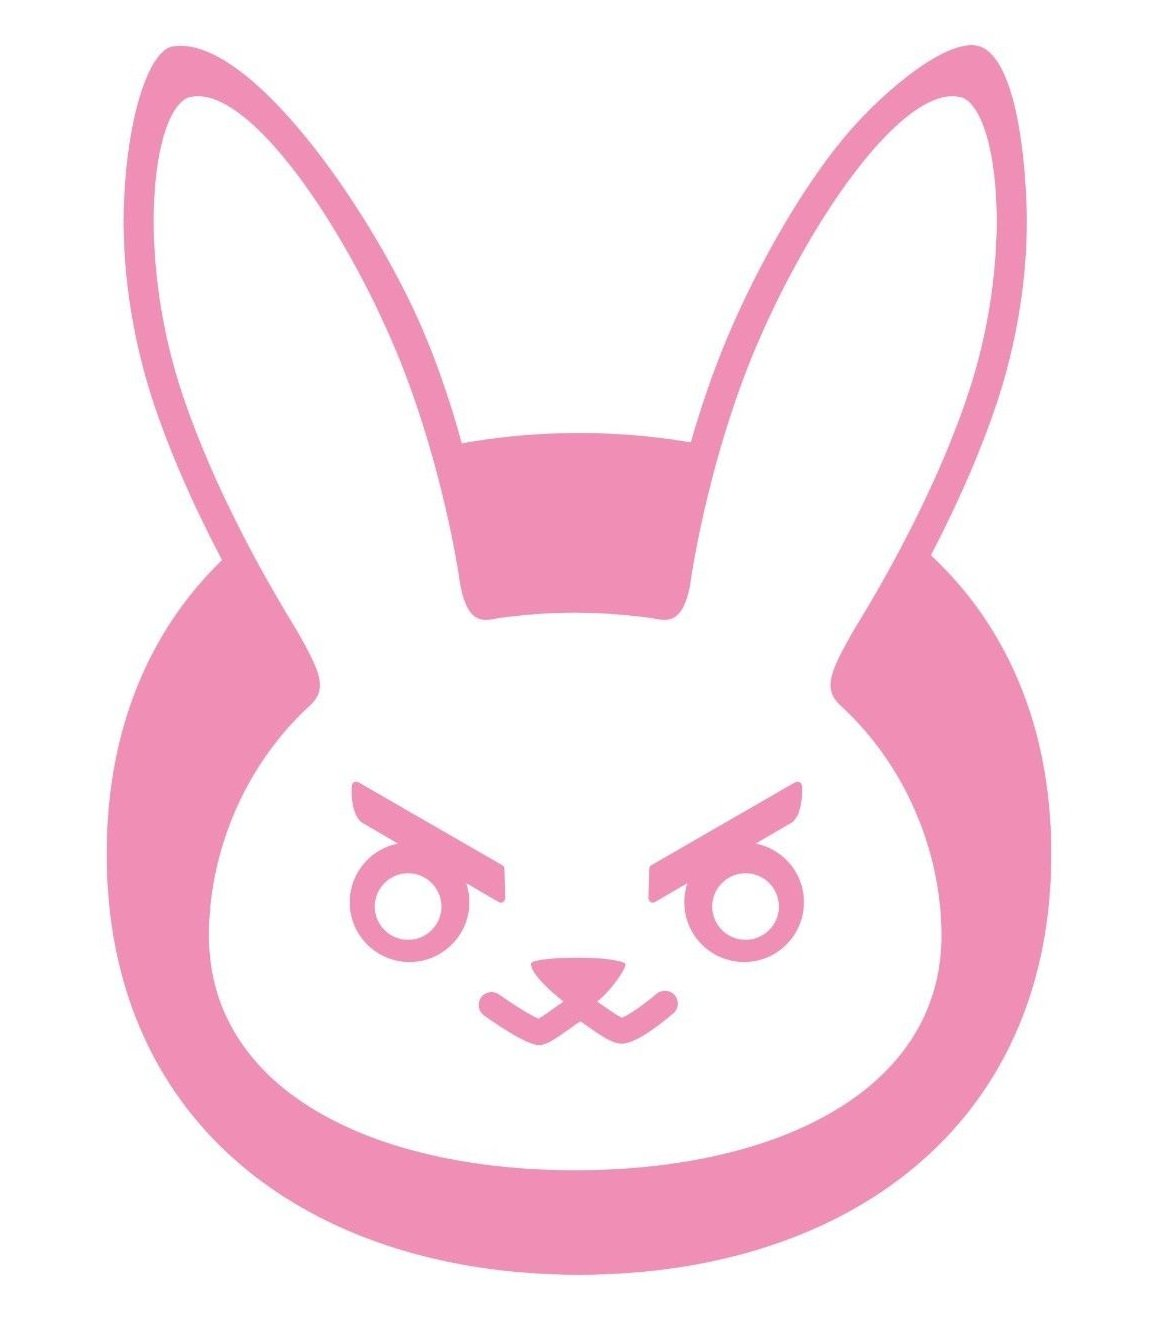 OVERWATCH VIDEO GAME D-VA BUNNY LOGO VINYL STICKERS SYMBOL 5 5